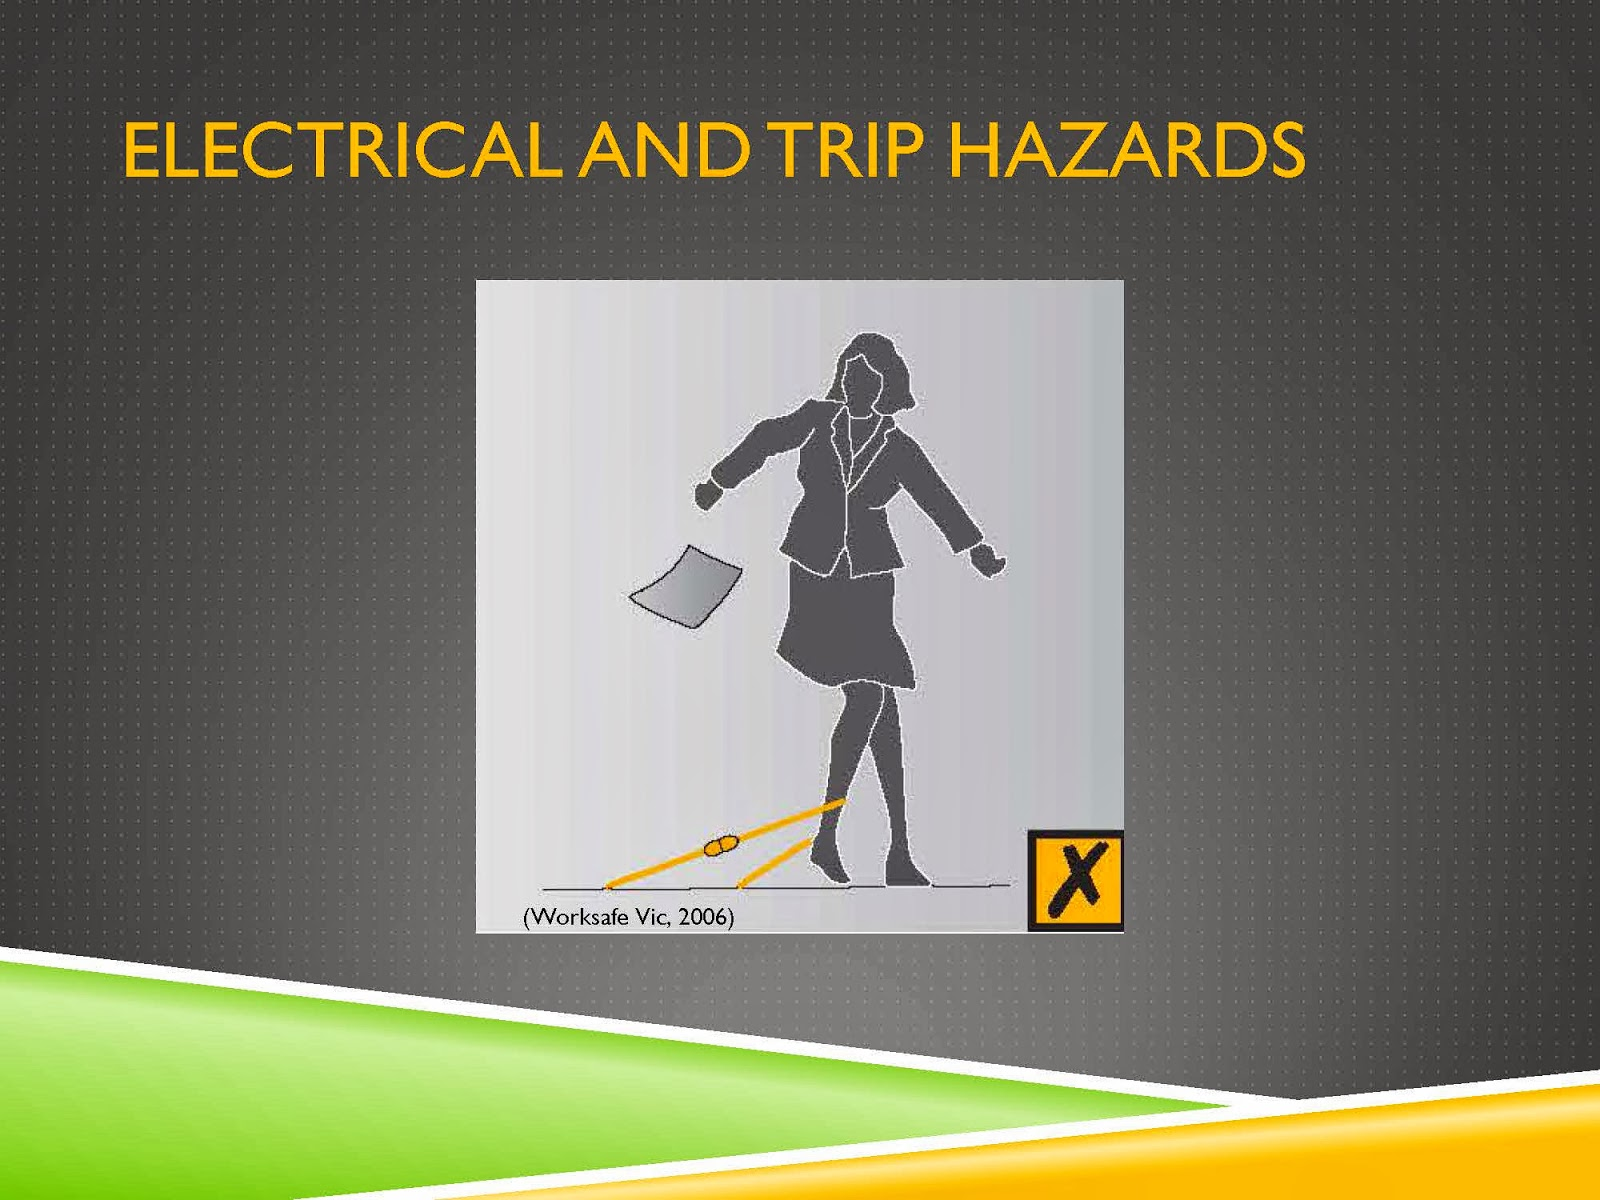 ELECTRICAL AND TRIP HAZARDS